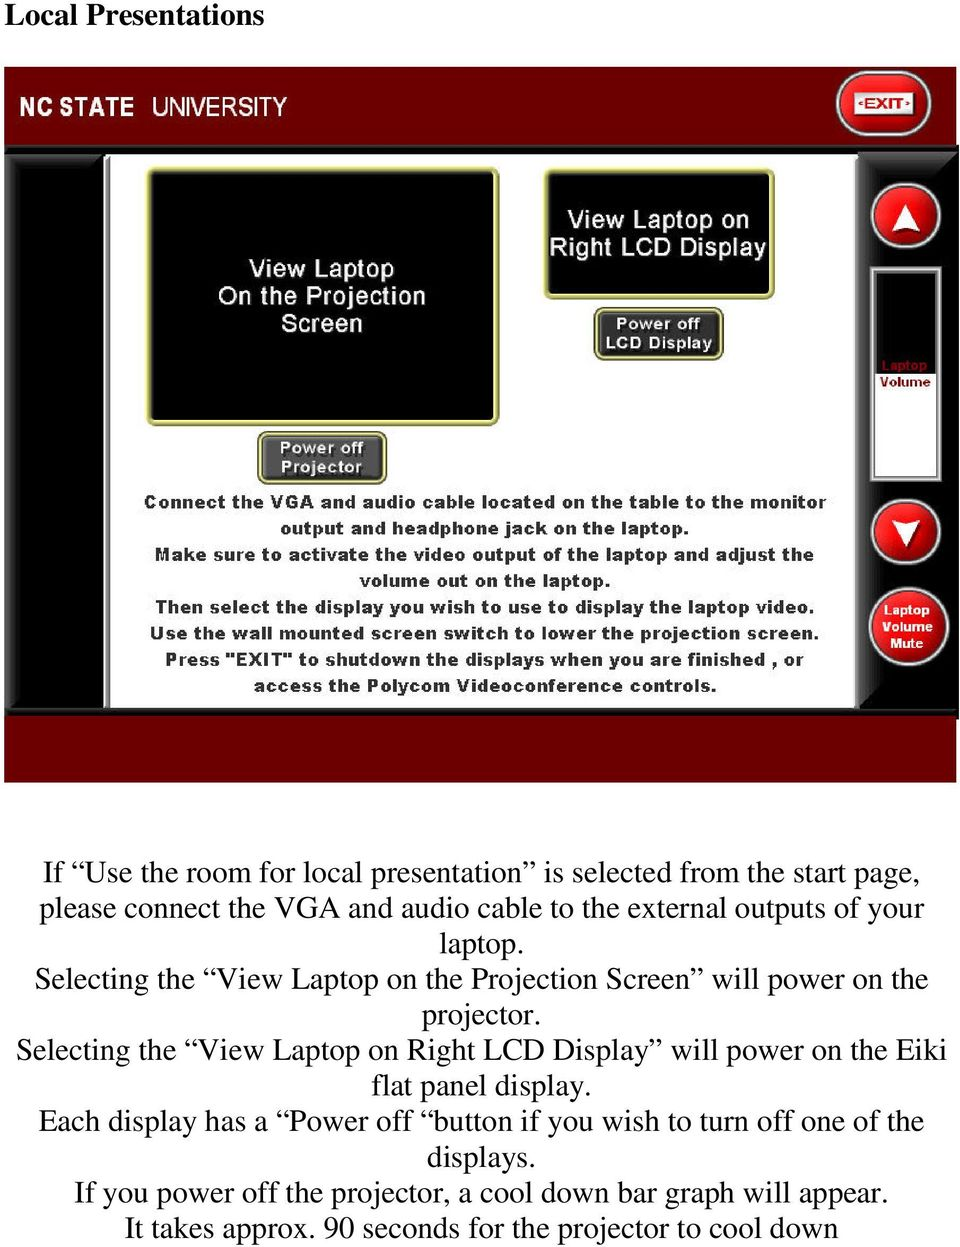 Selecting the View Laptop on Right LCD Display will power on the Eiki flat panel display.